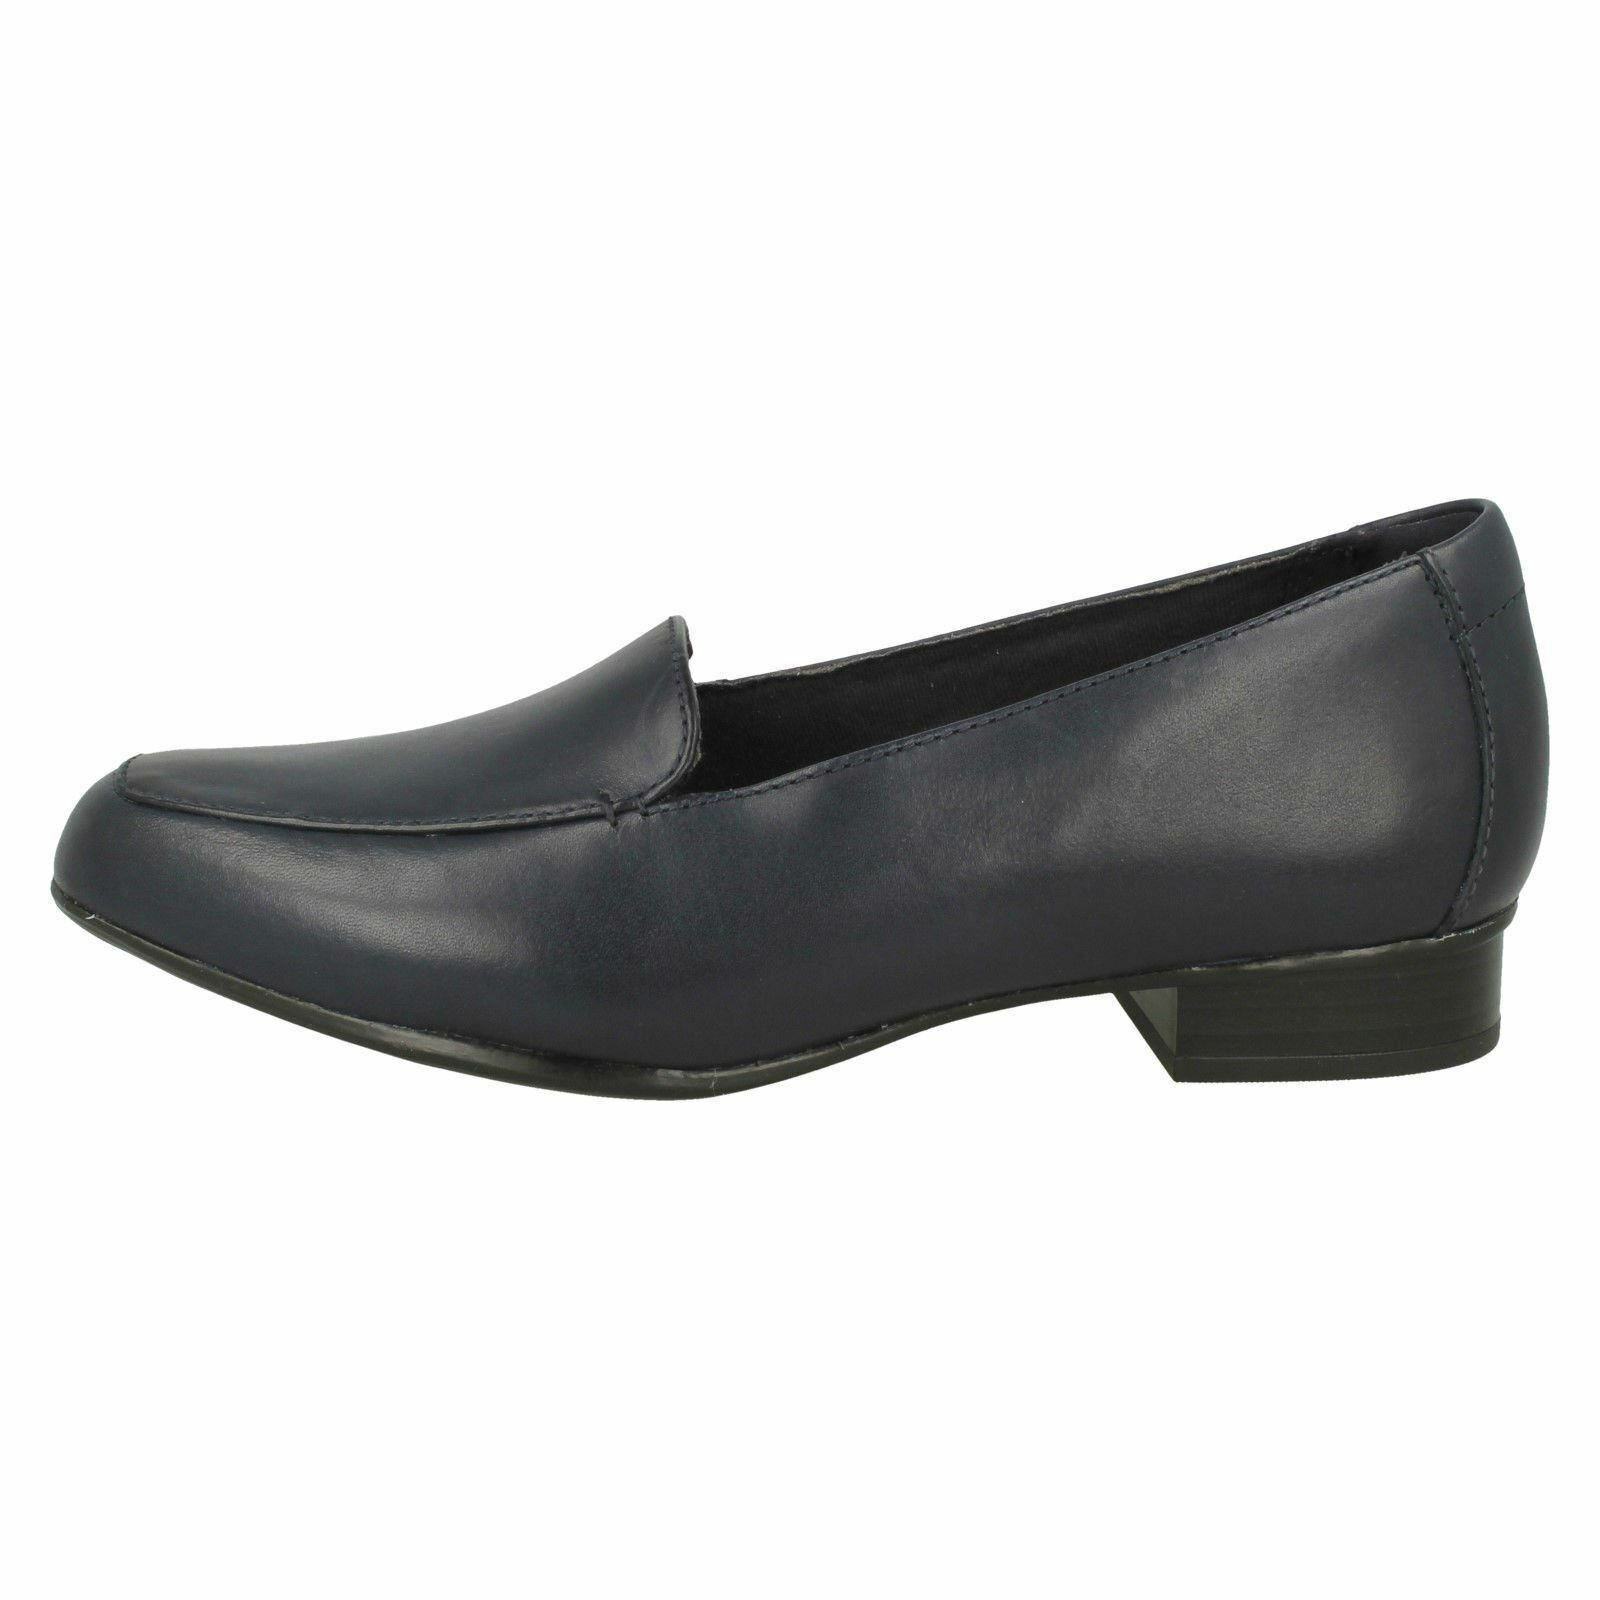 LADIES CLARKS LEATHER SLIP ON CASUAL LOAFER FLAT LOW HEEL LOAFER CASUAL Schuhe SIZE JULIET LORA 764da4